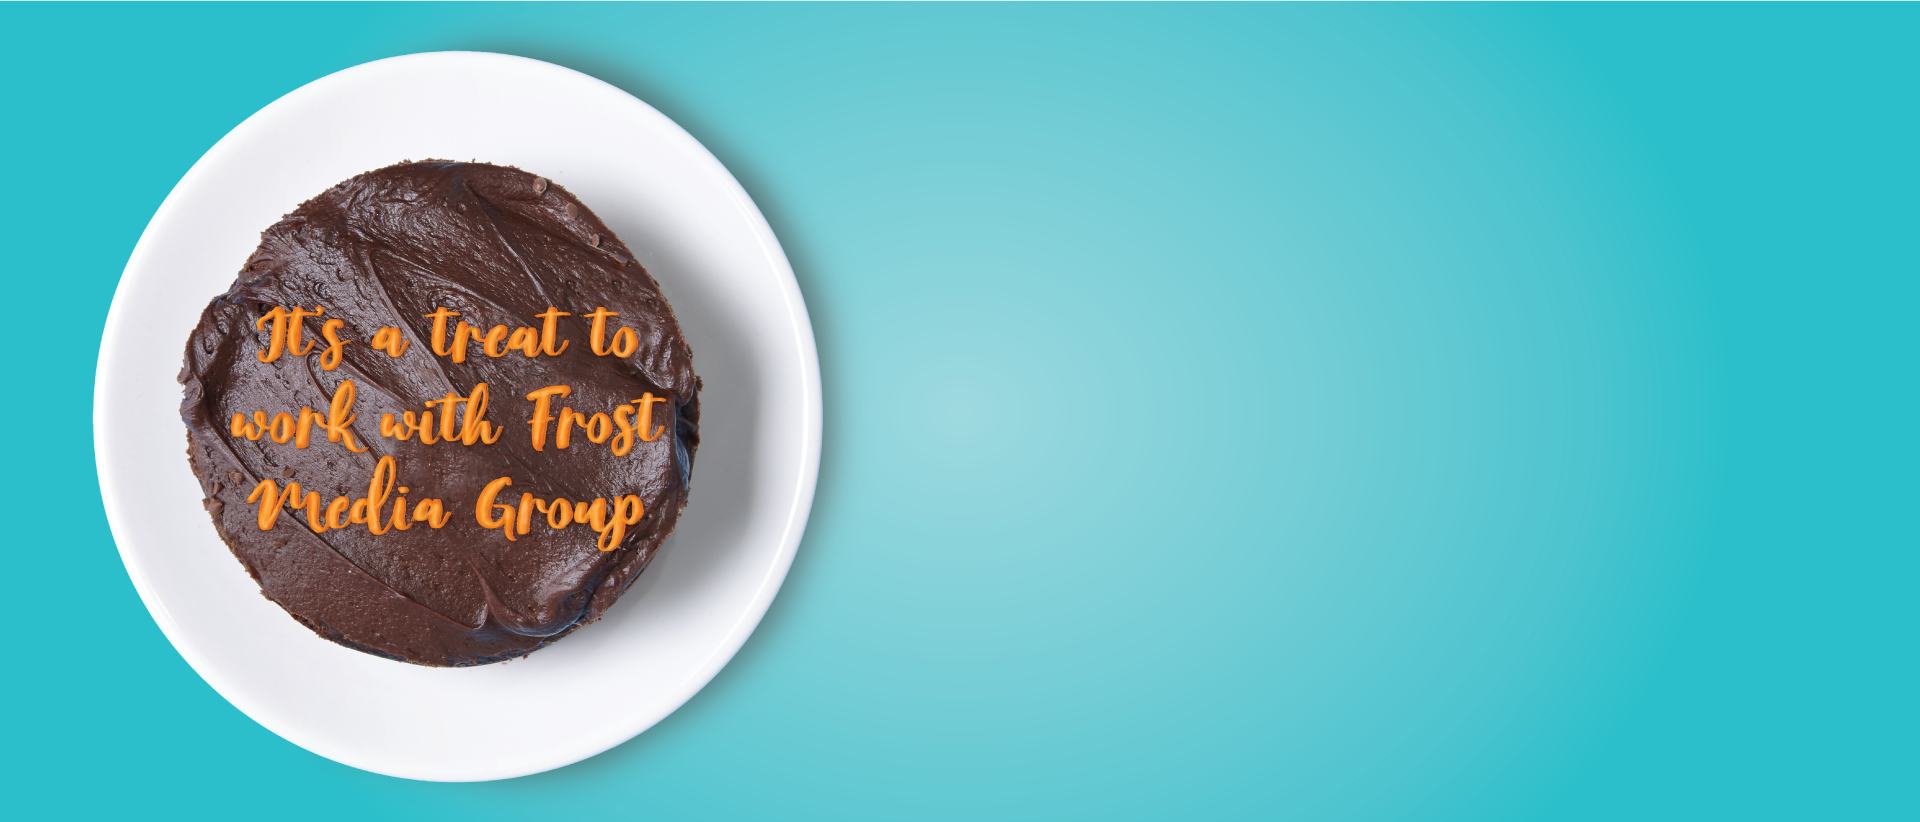 Have you picked your frosting yet?